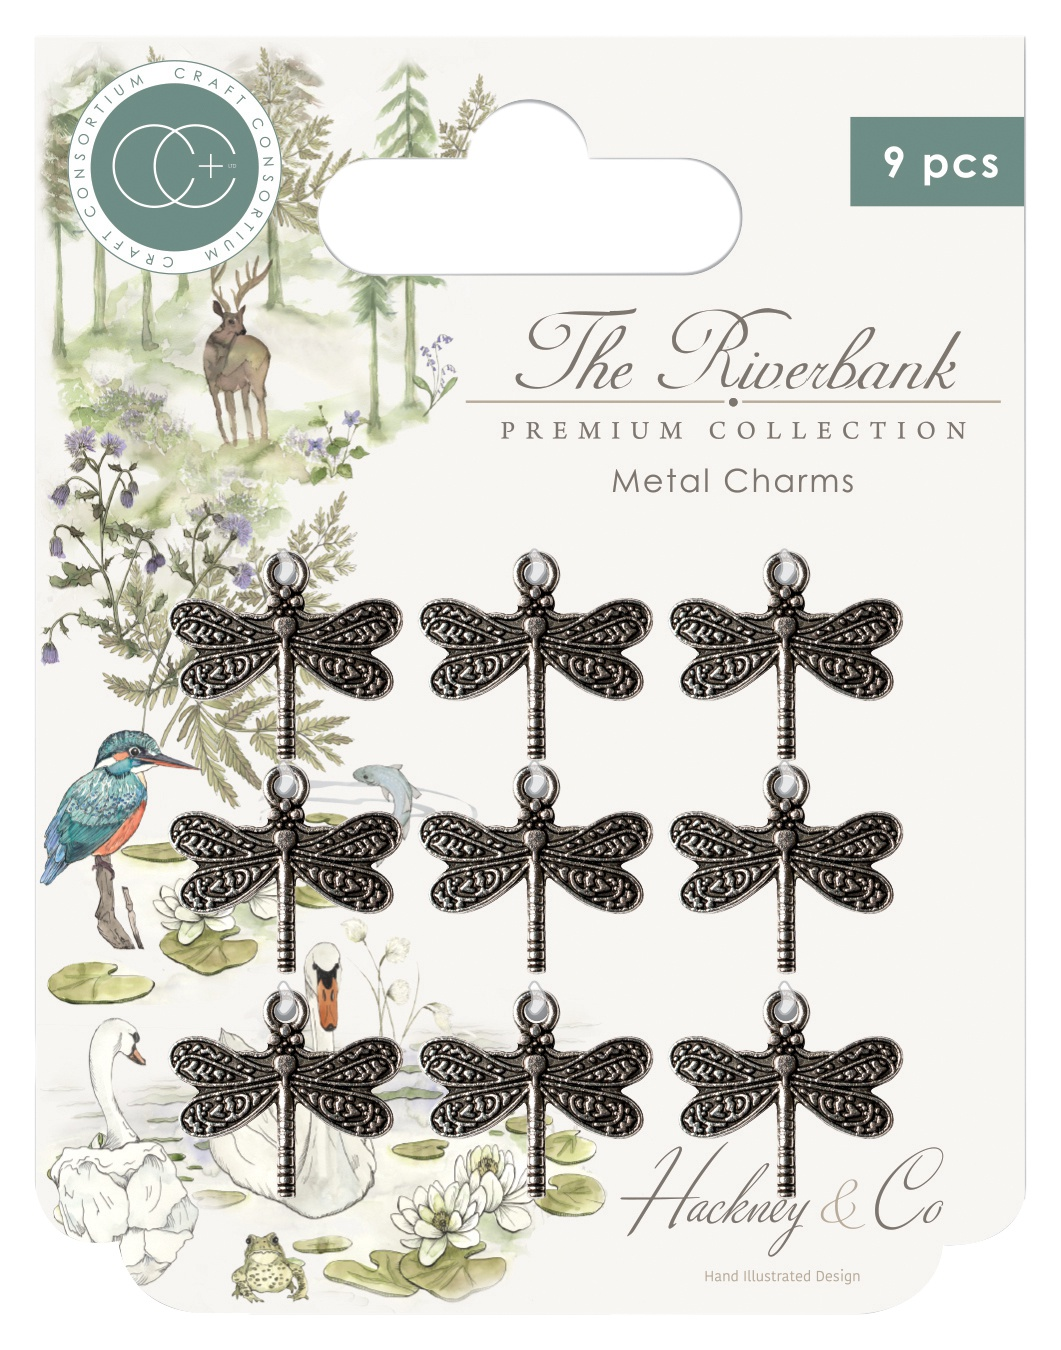 CC Dragonfly Charms